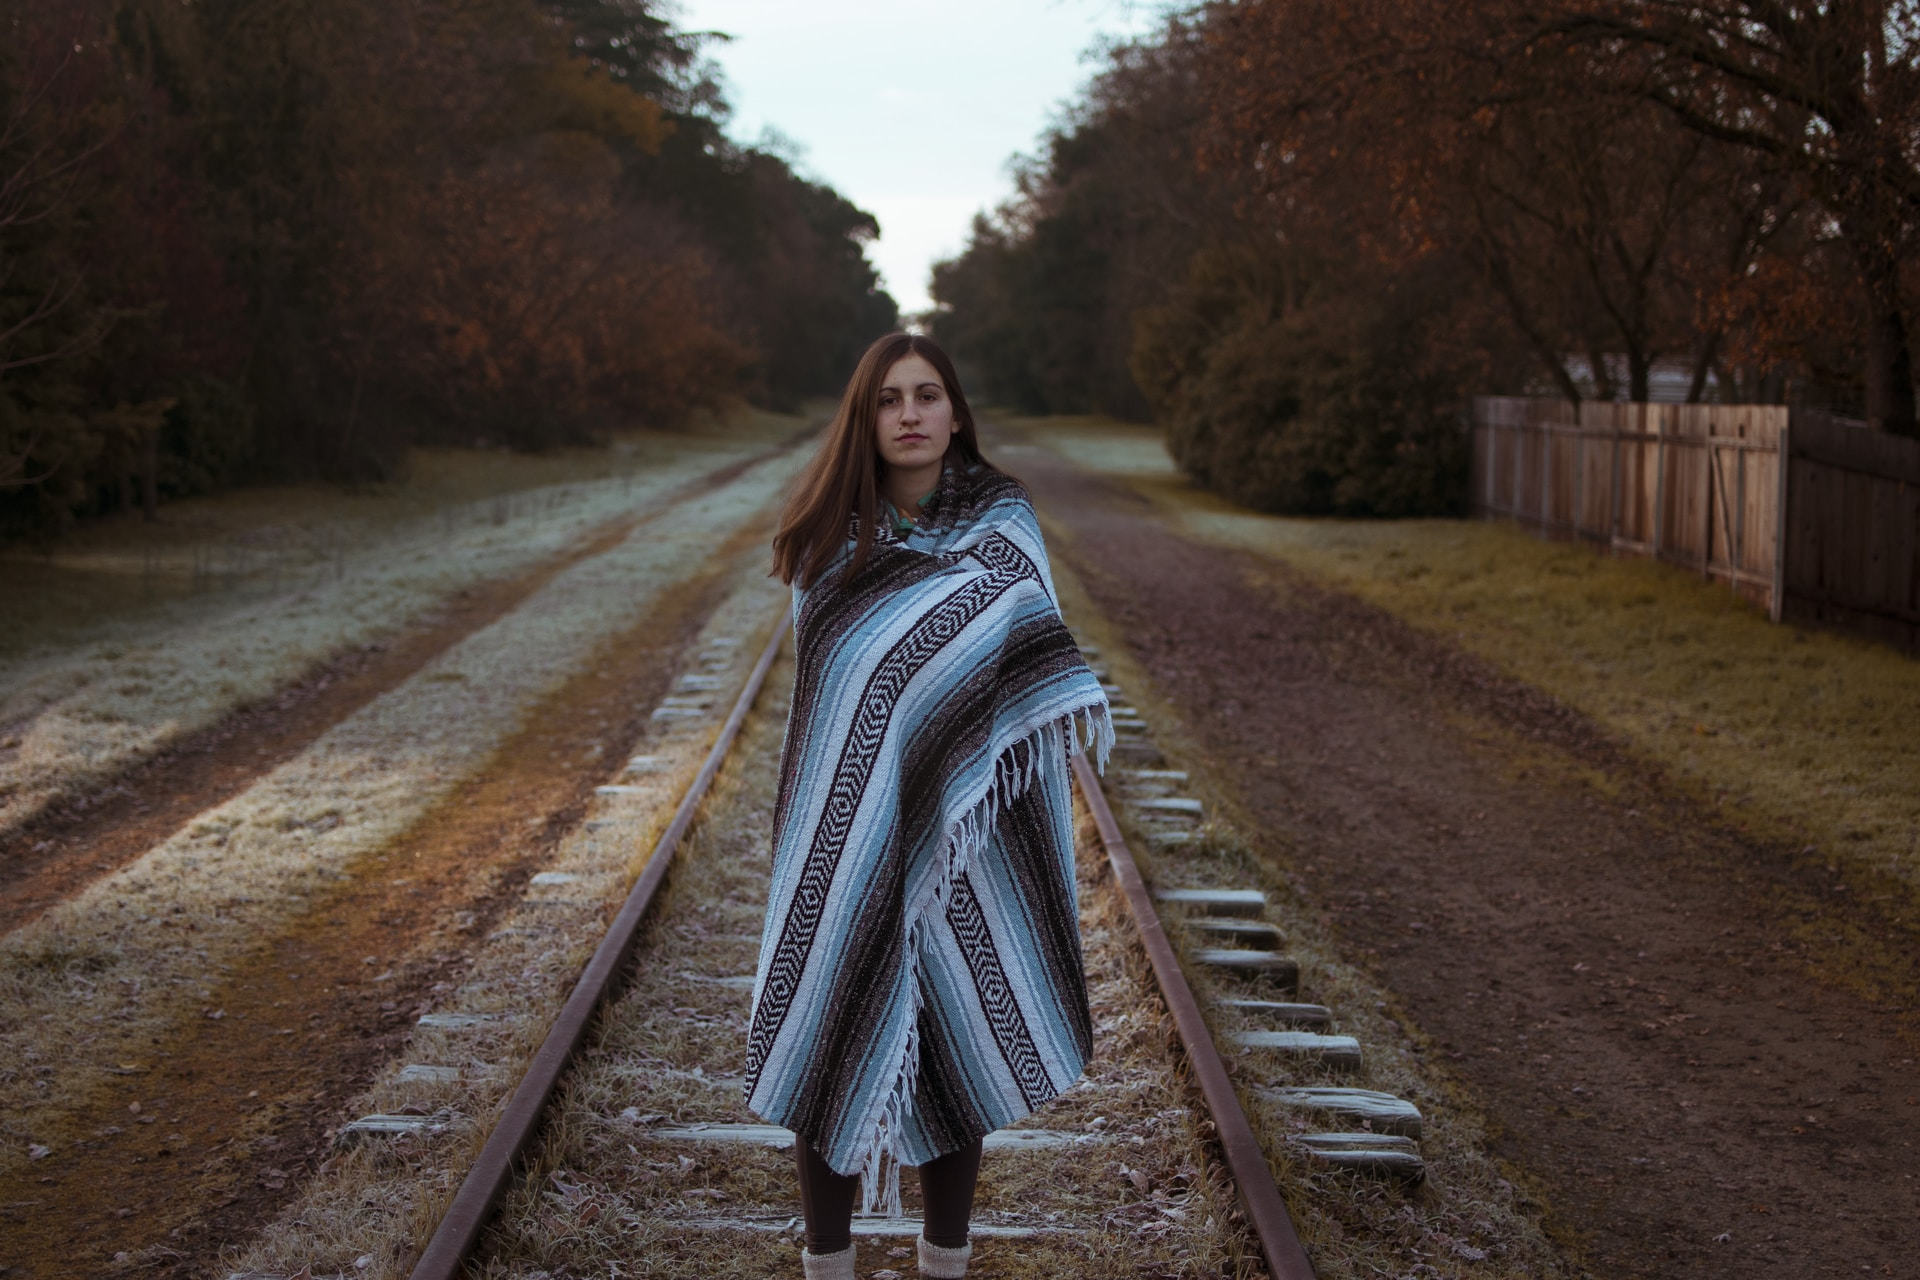 woman with blue and black striped scarf standing on brown train railway during daytime